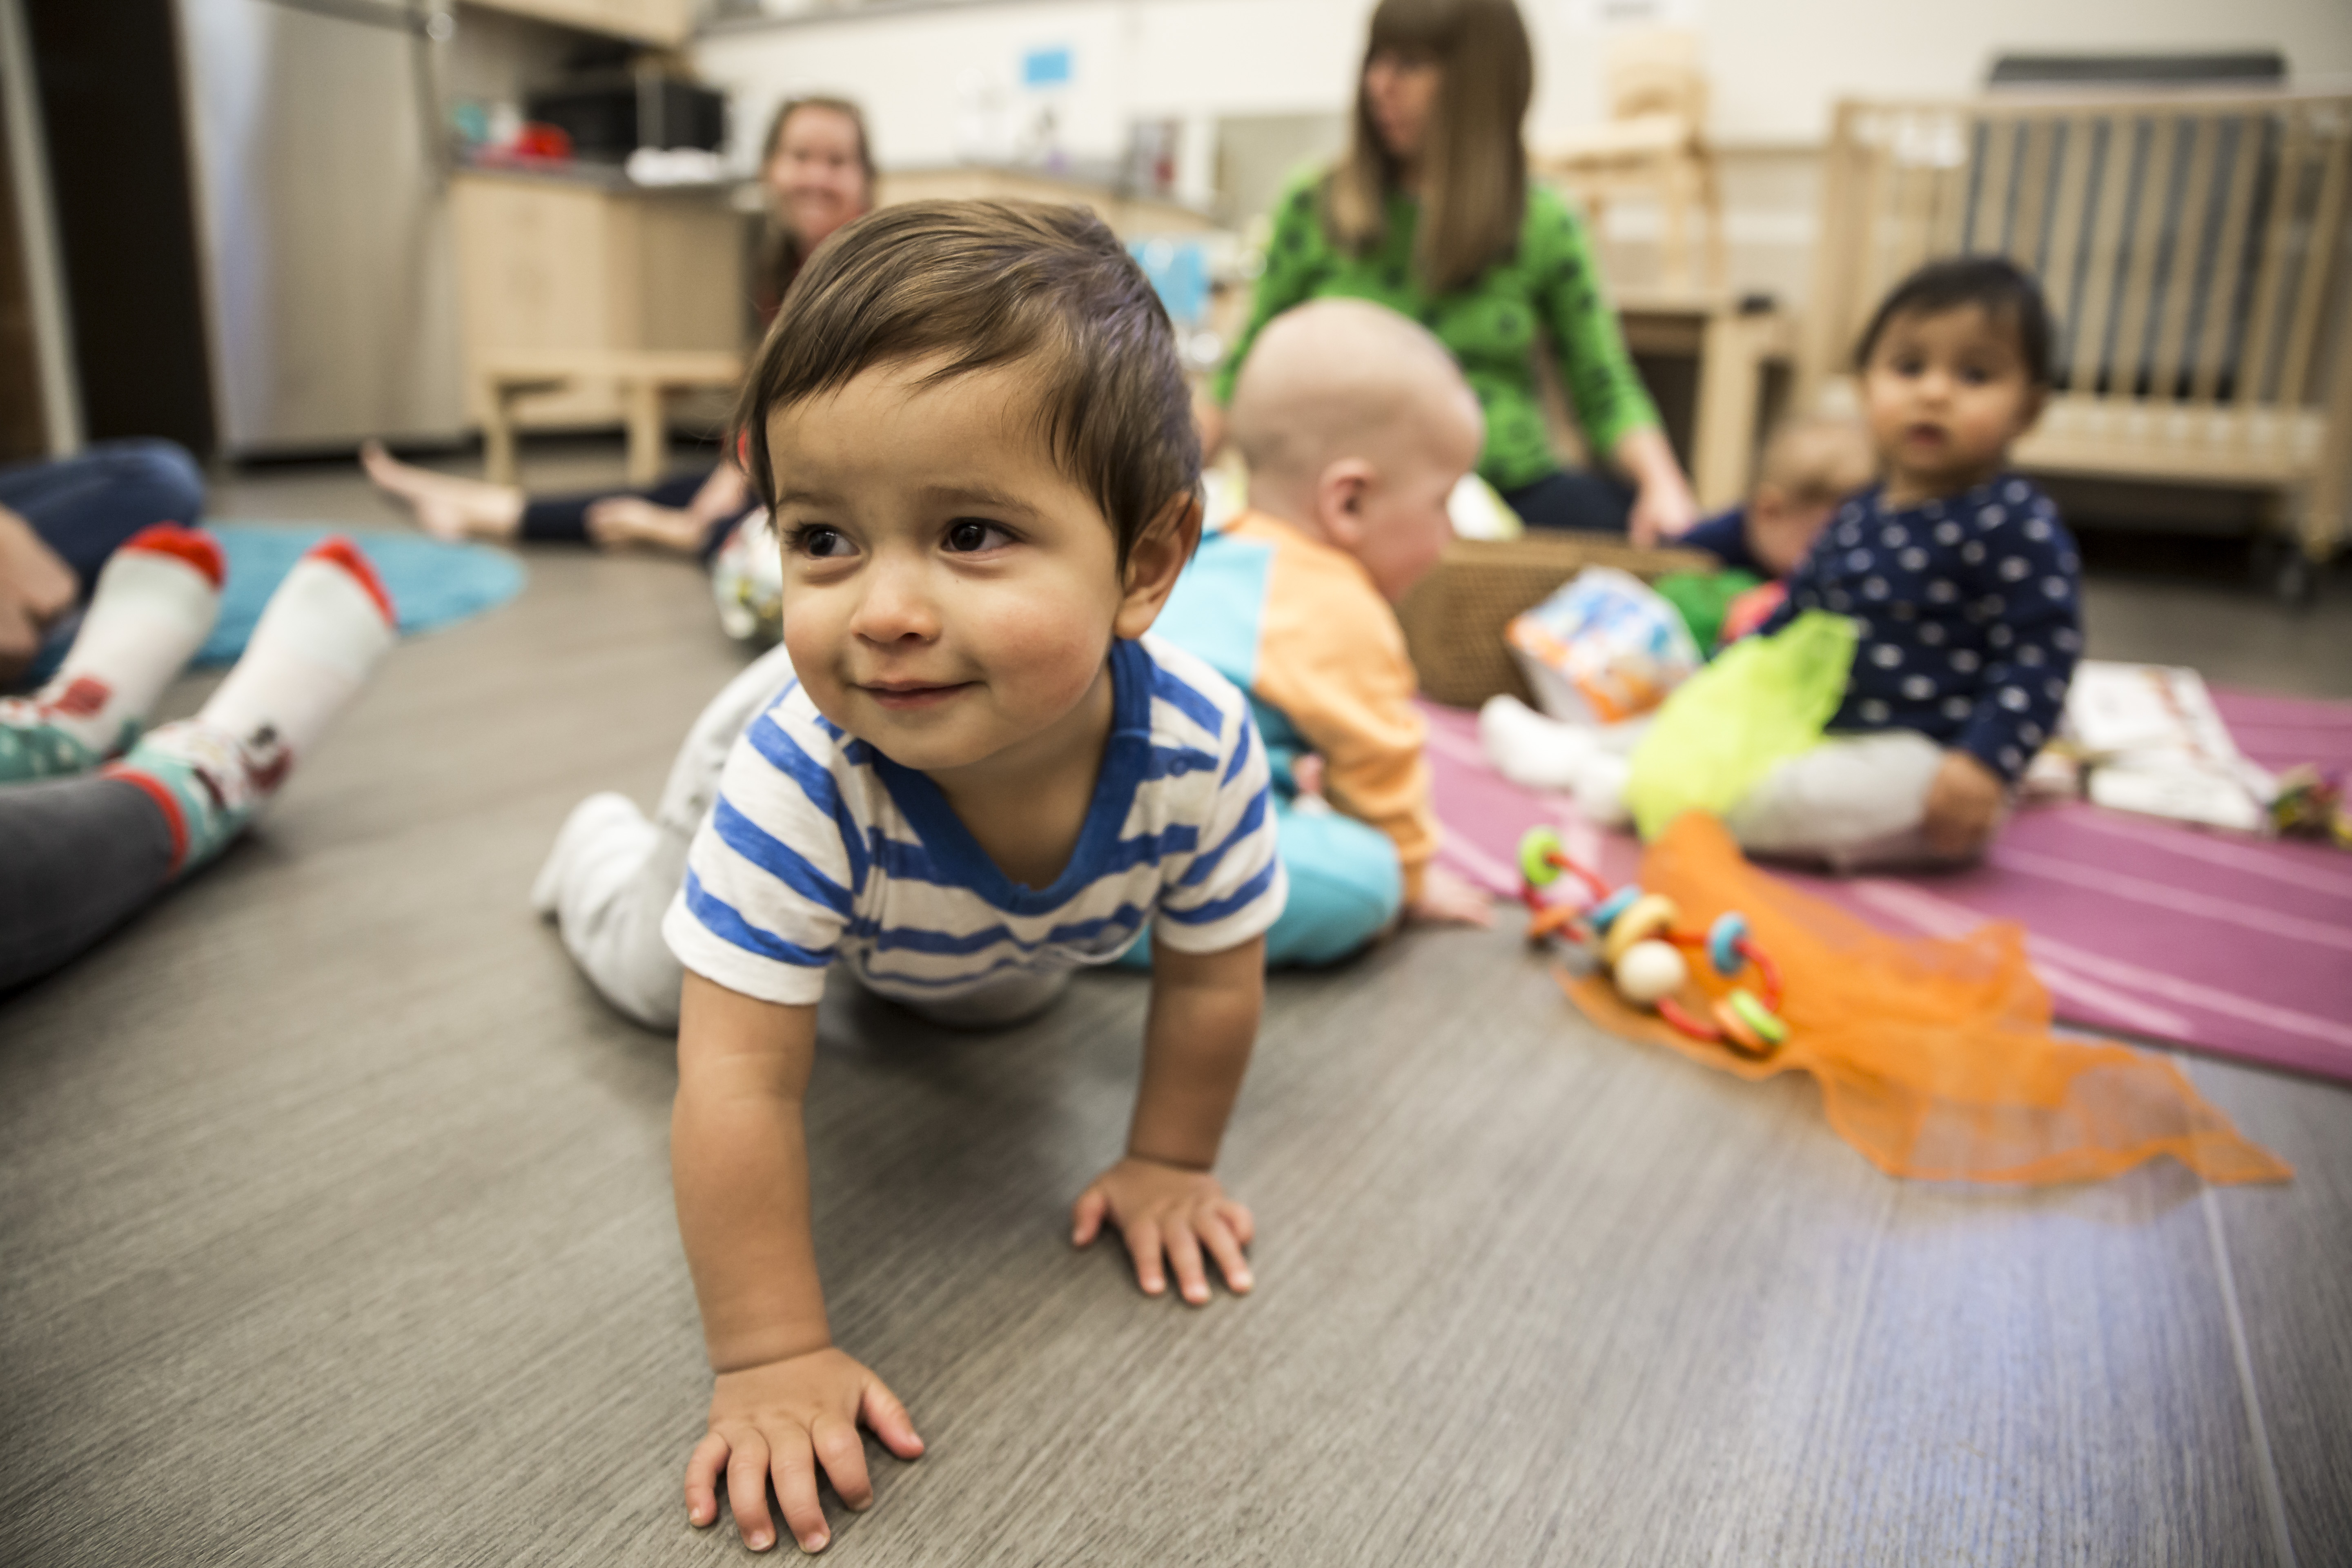 The facility offers infant care for children 12 weeks to 24 months.